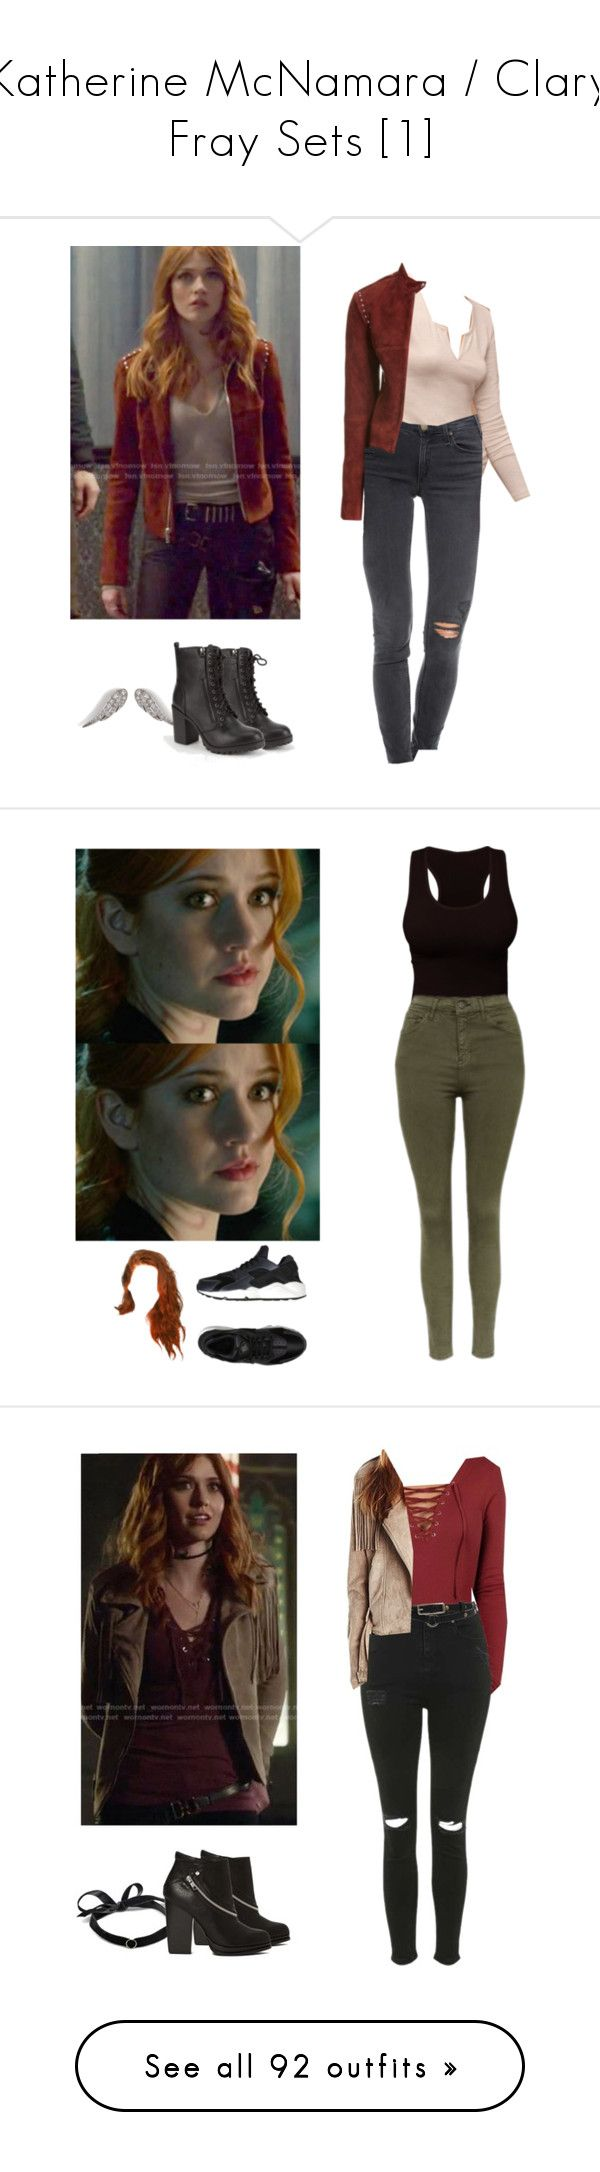 """Katherine McNamara / Clary Fray Sets [1]"" by demiwitch-of-mischief ❤ liked on Polyvore featuring McGuire, Theory, Anita Ko, Soda, Topshop, NIKE, Pilot, Mateo, Roxy and River Island"